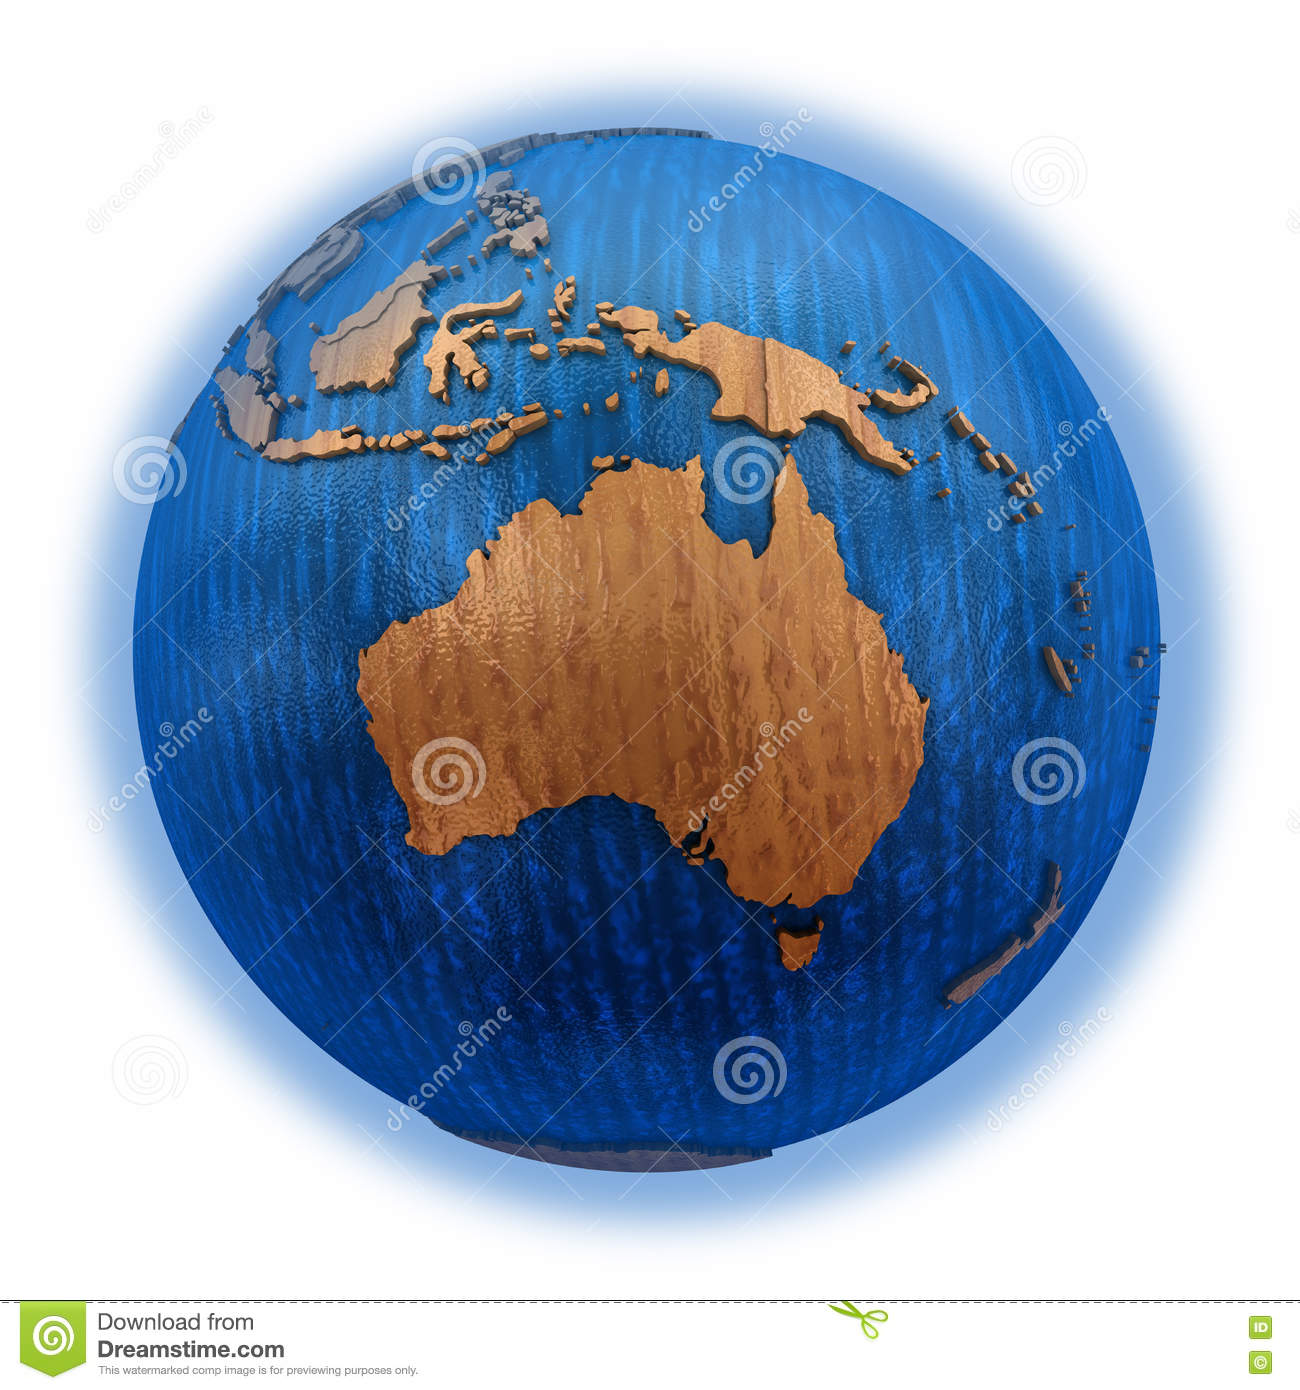 hight resolution of australia on wooden model of planet earth with embossed continents and visible country borders 3d illustration isolated on white background